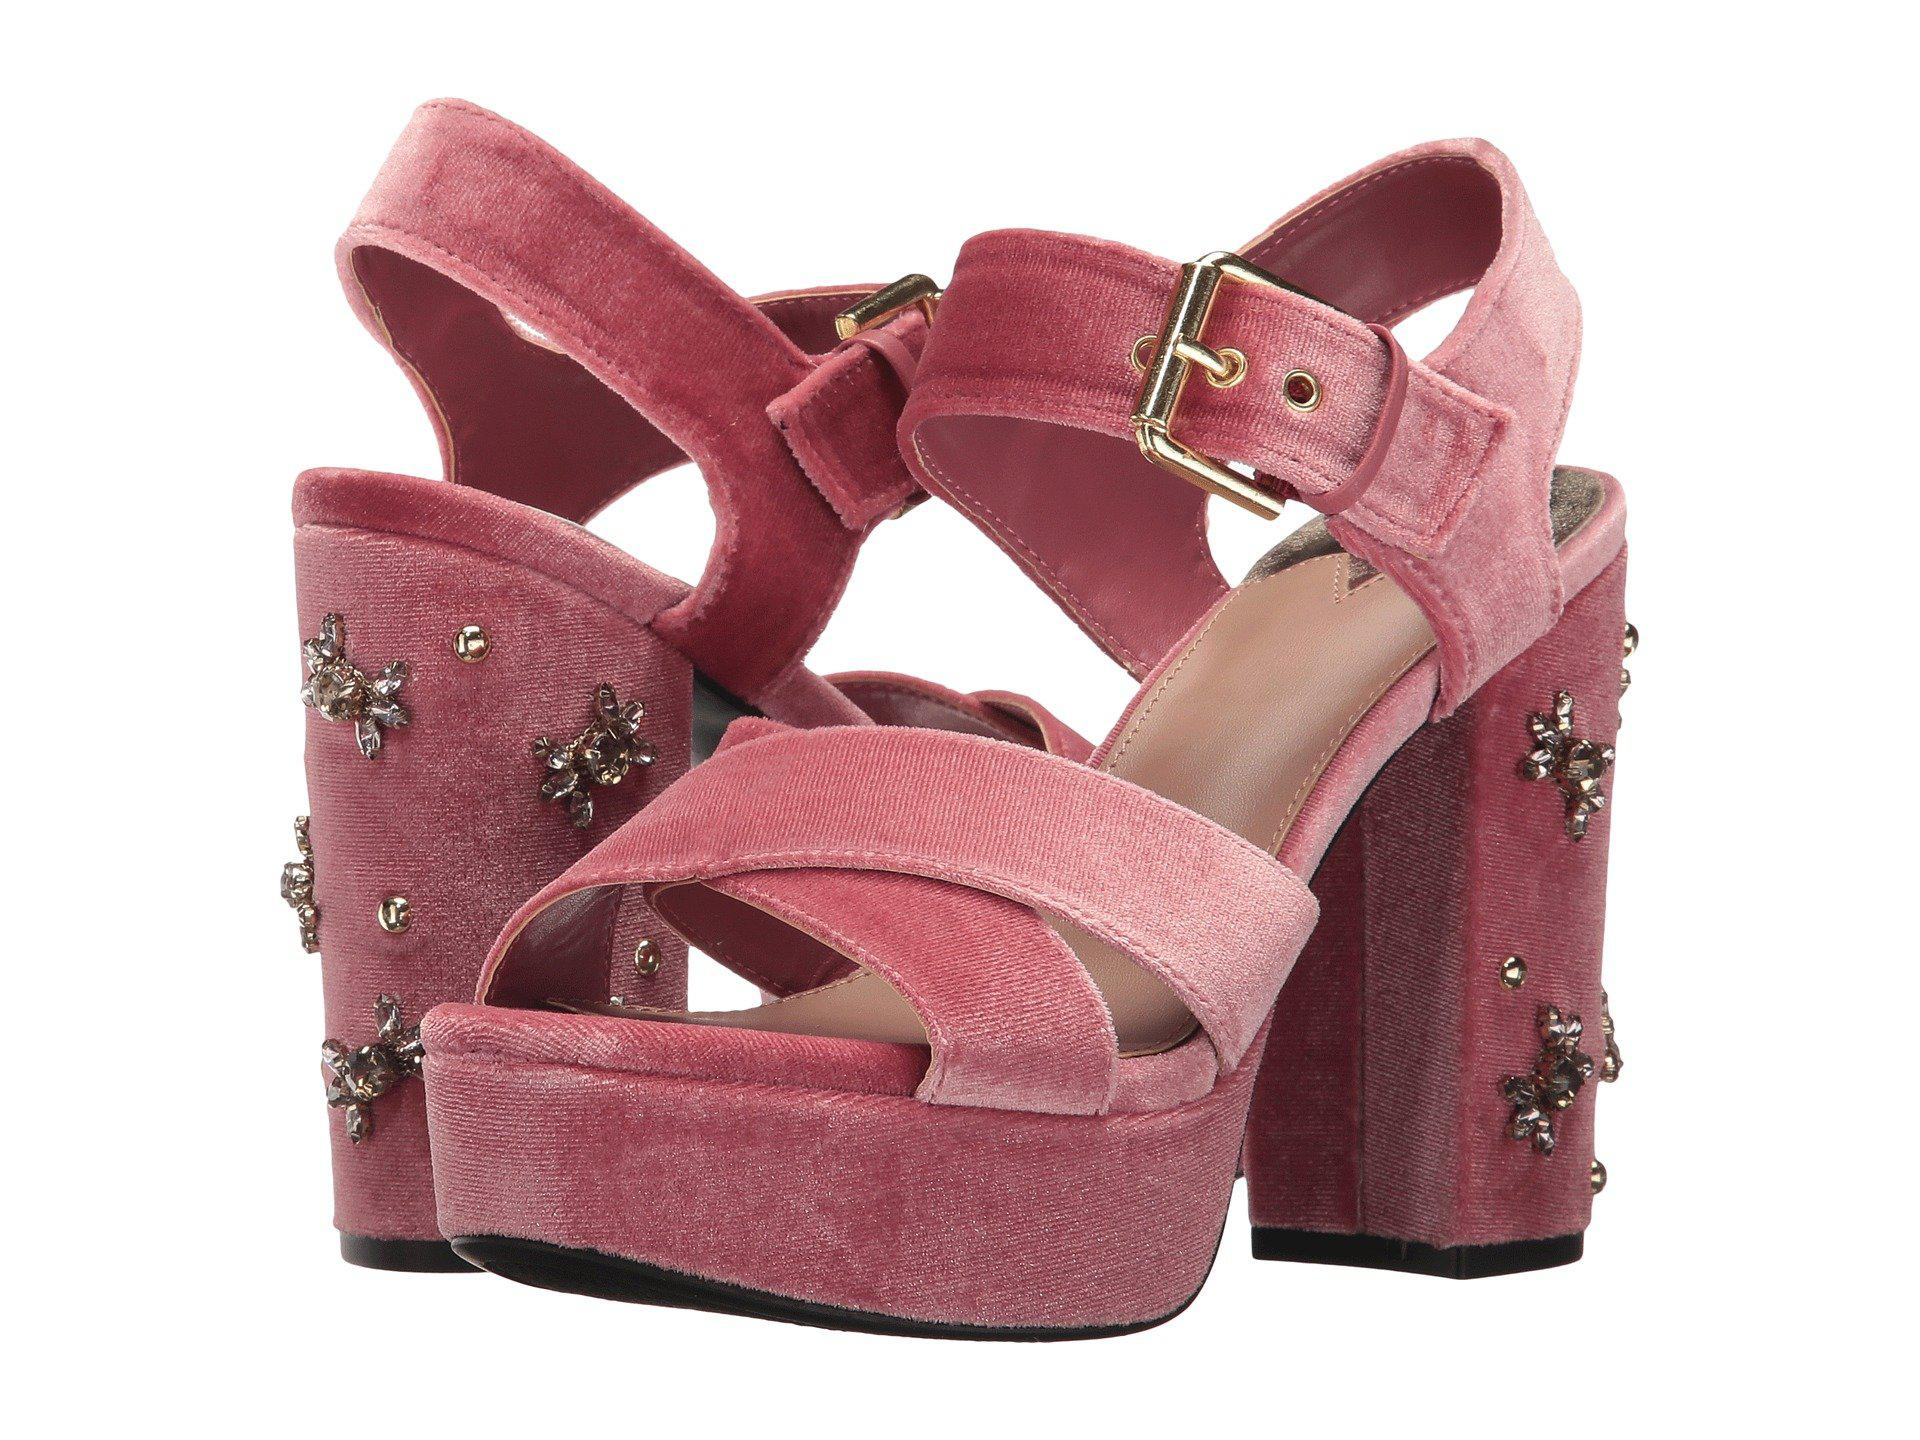 0e5102084 Lyst - Circus by Sam Edelman Morgan Platform in Pink